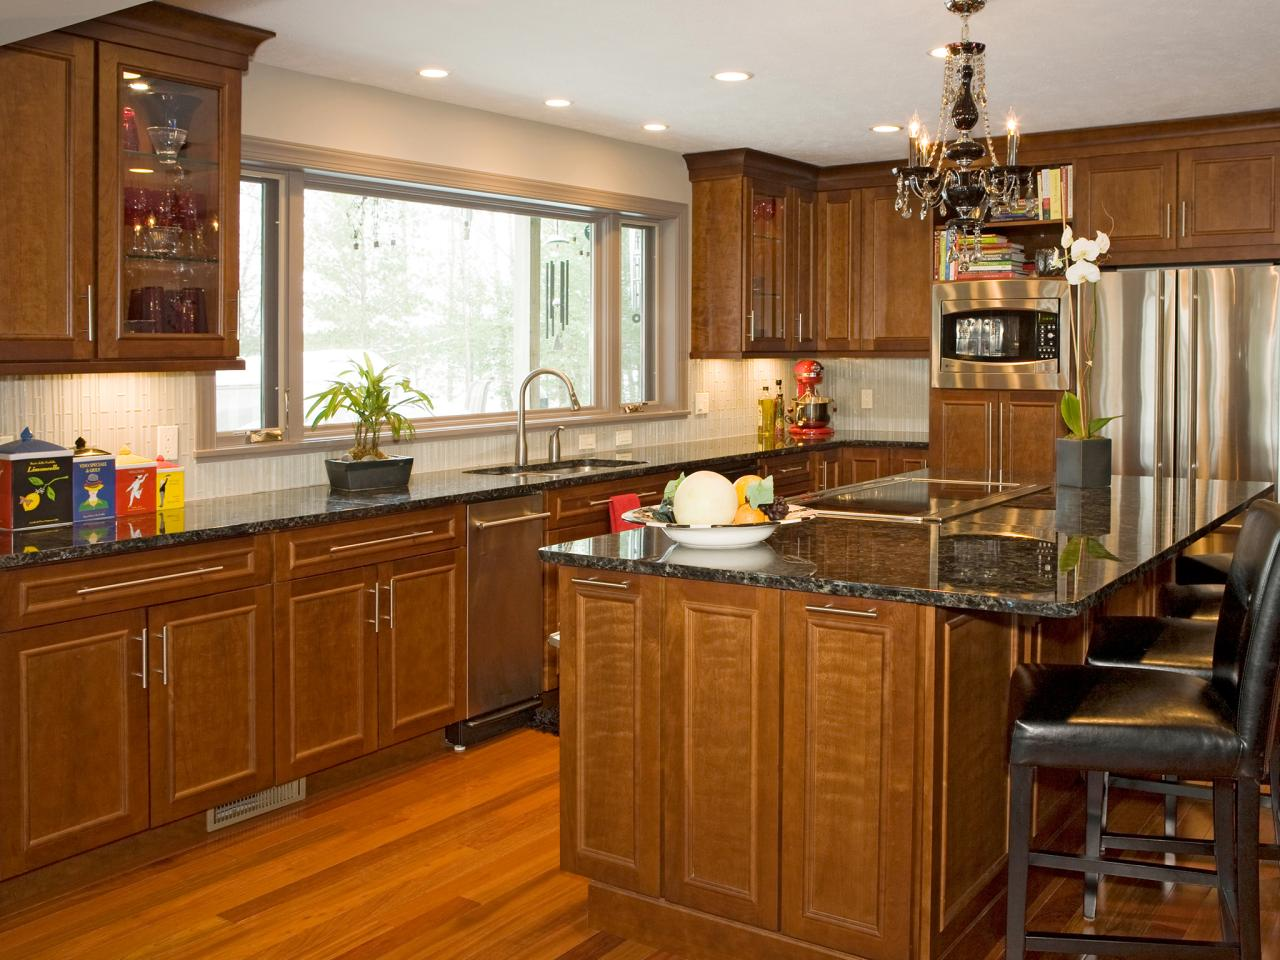 Two Toned Kitchen Cabinets Pictures Options Tips Ideas Kitchen Designs Choose Kitchen